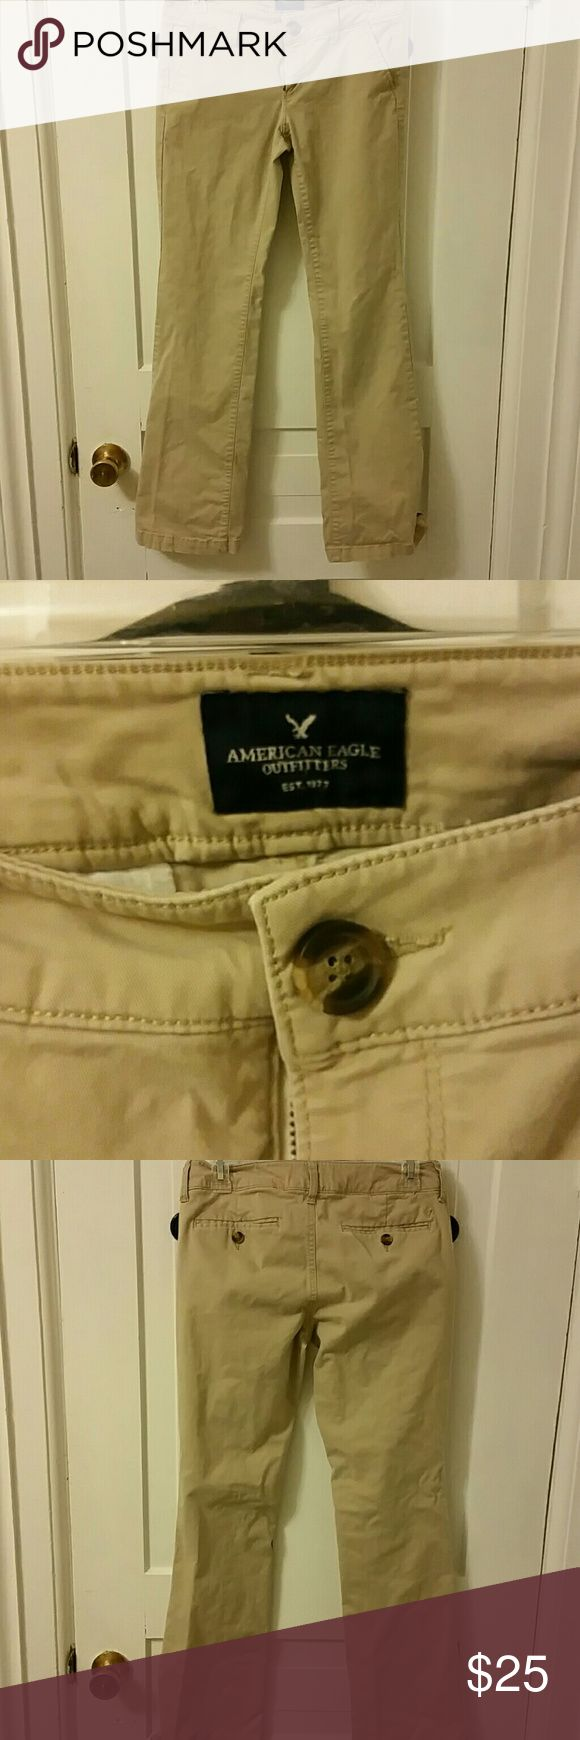 American Eagle kaki pants American Eagle kaki pants. Worn twice, great condition,  no stains or wear. American Eagle Outfitters Pants